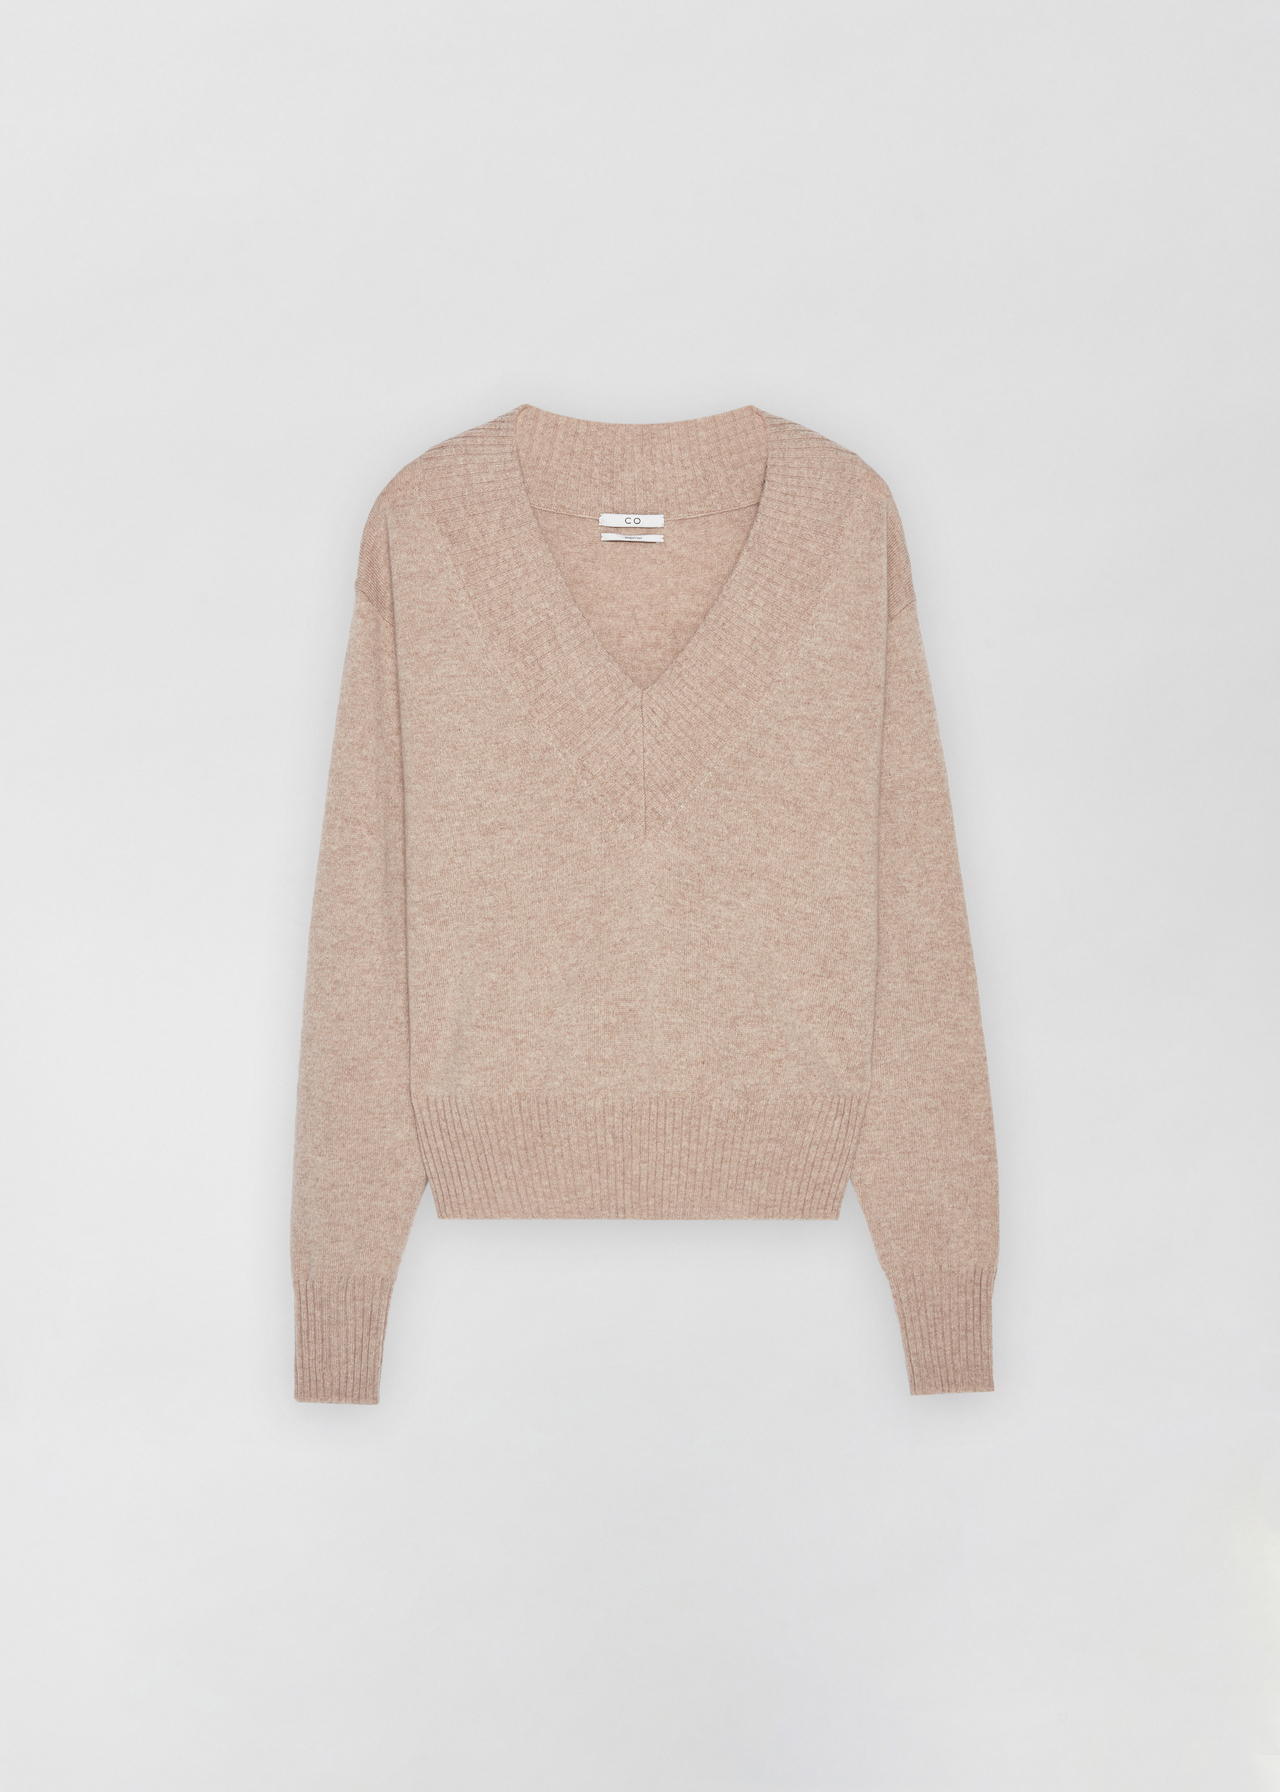 Cashmere V-Neck Sweater - Light Grey in Sand Melange by Co Collections